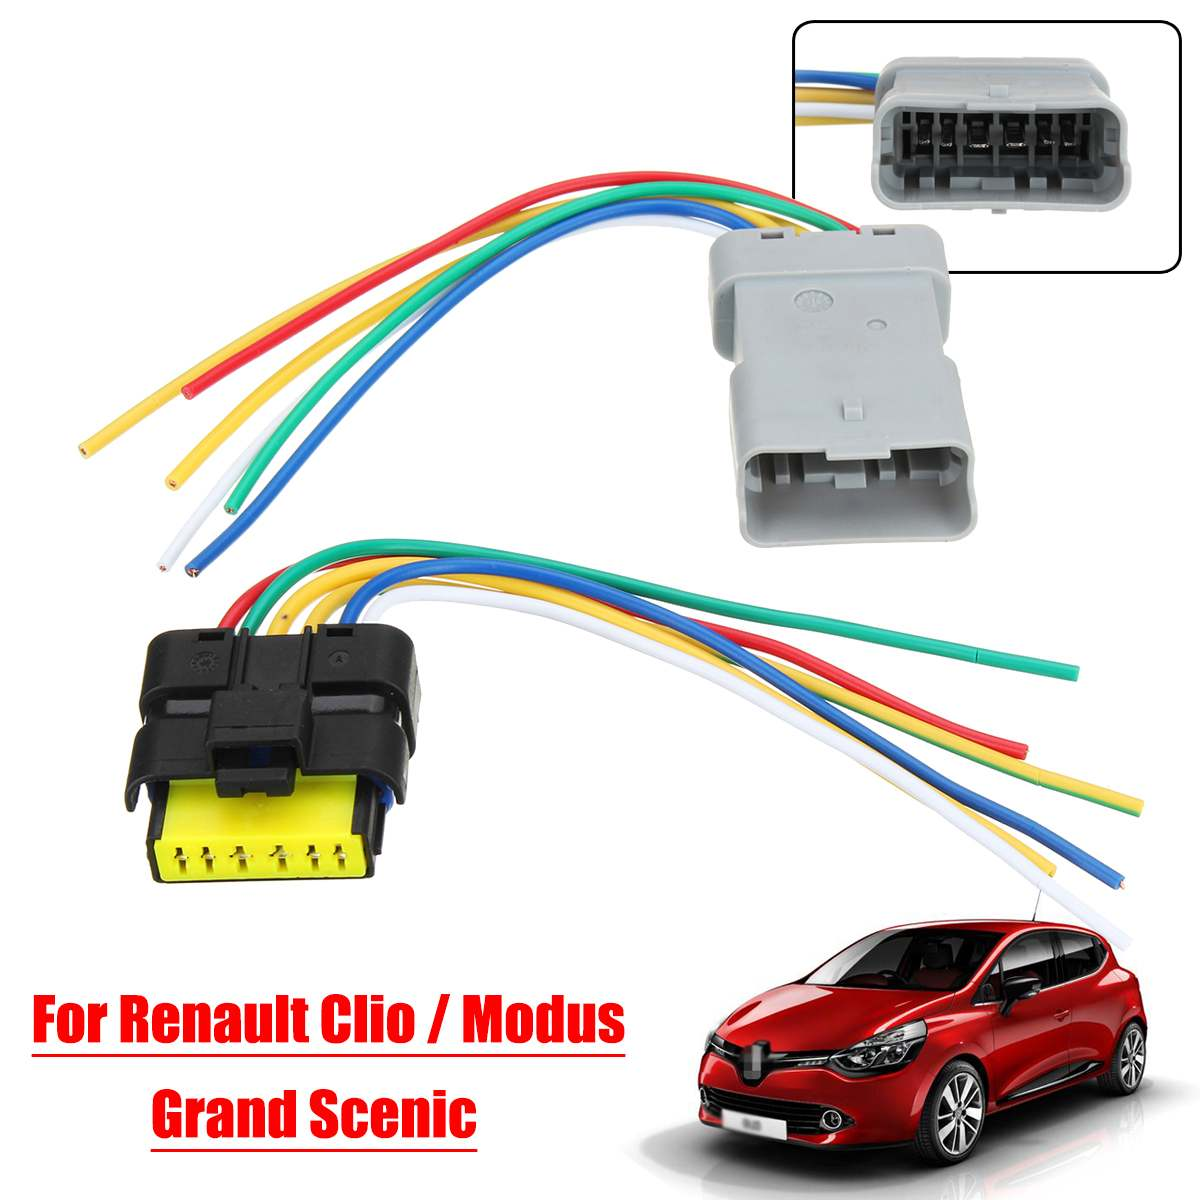 Modest 1set Window Module Wiring Ponytail Harness Plastic Plug For Renault Clio Grand Scenic Modus